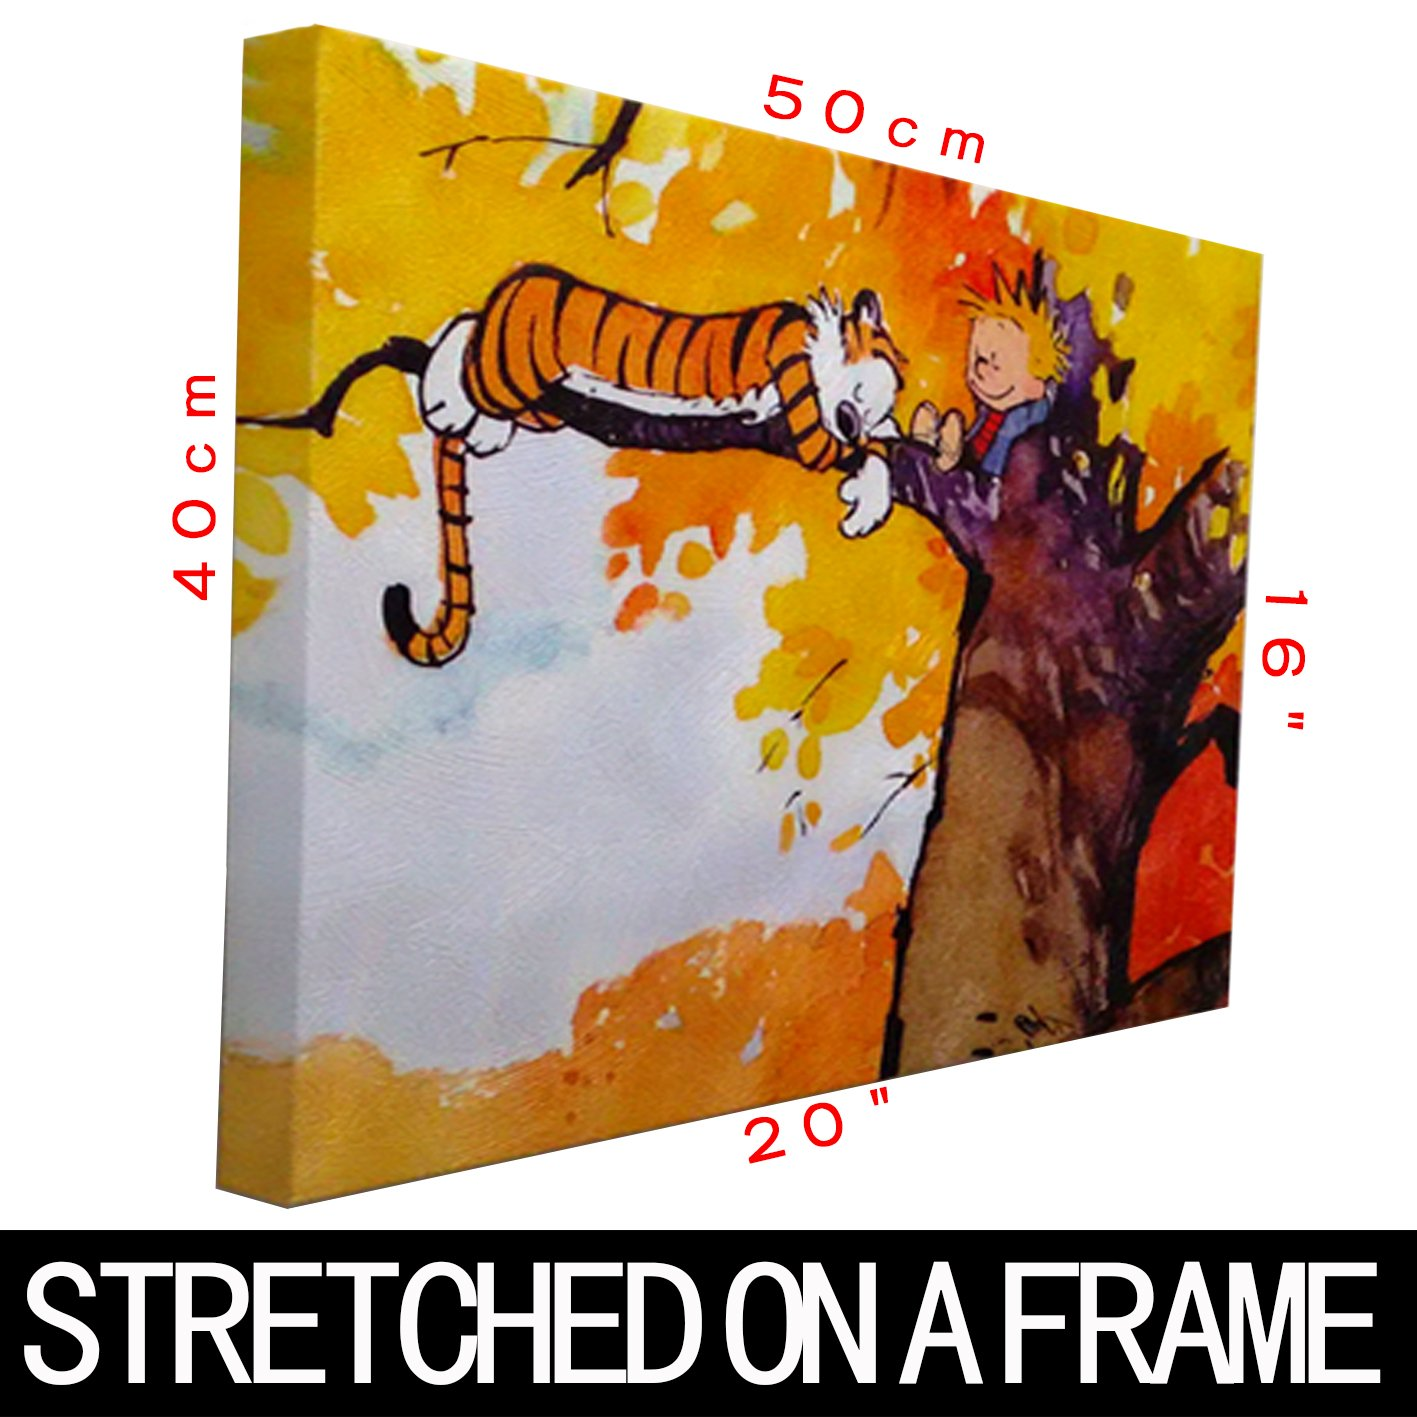 amazon com h5h2976 calvin and hobbes on the tree 20x16 canvas amazon com h5h2976 calvin and hobbes on the tree 20x16 canvas framed reprint prints posters prints